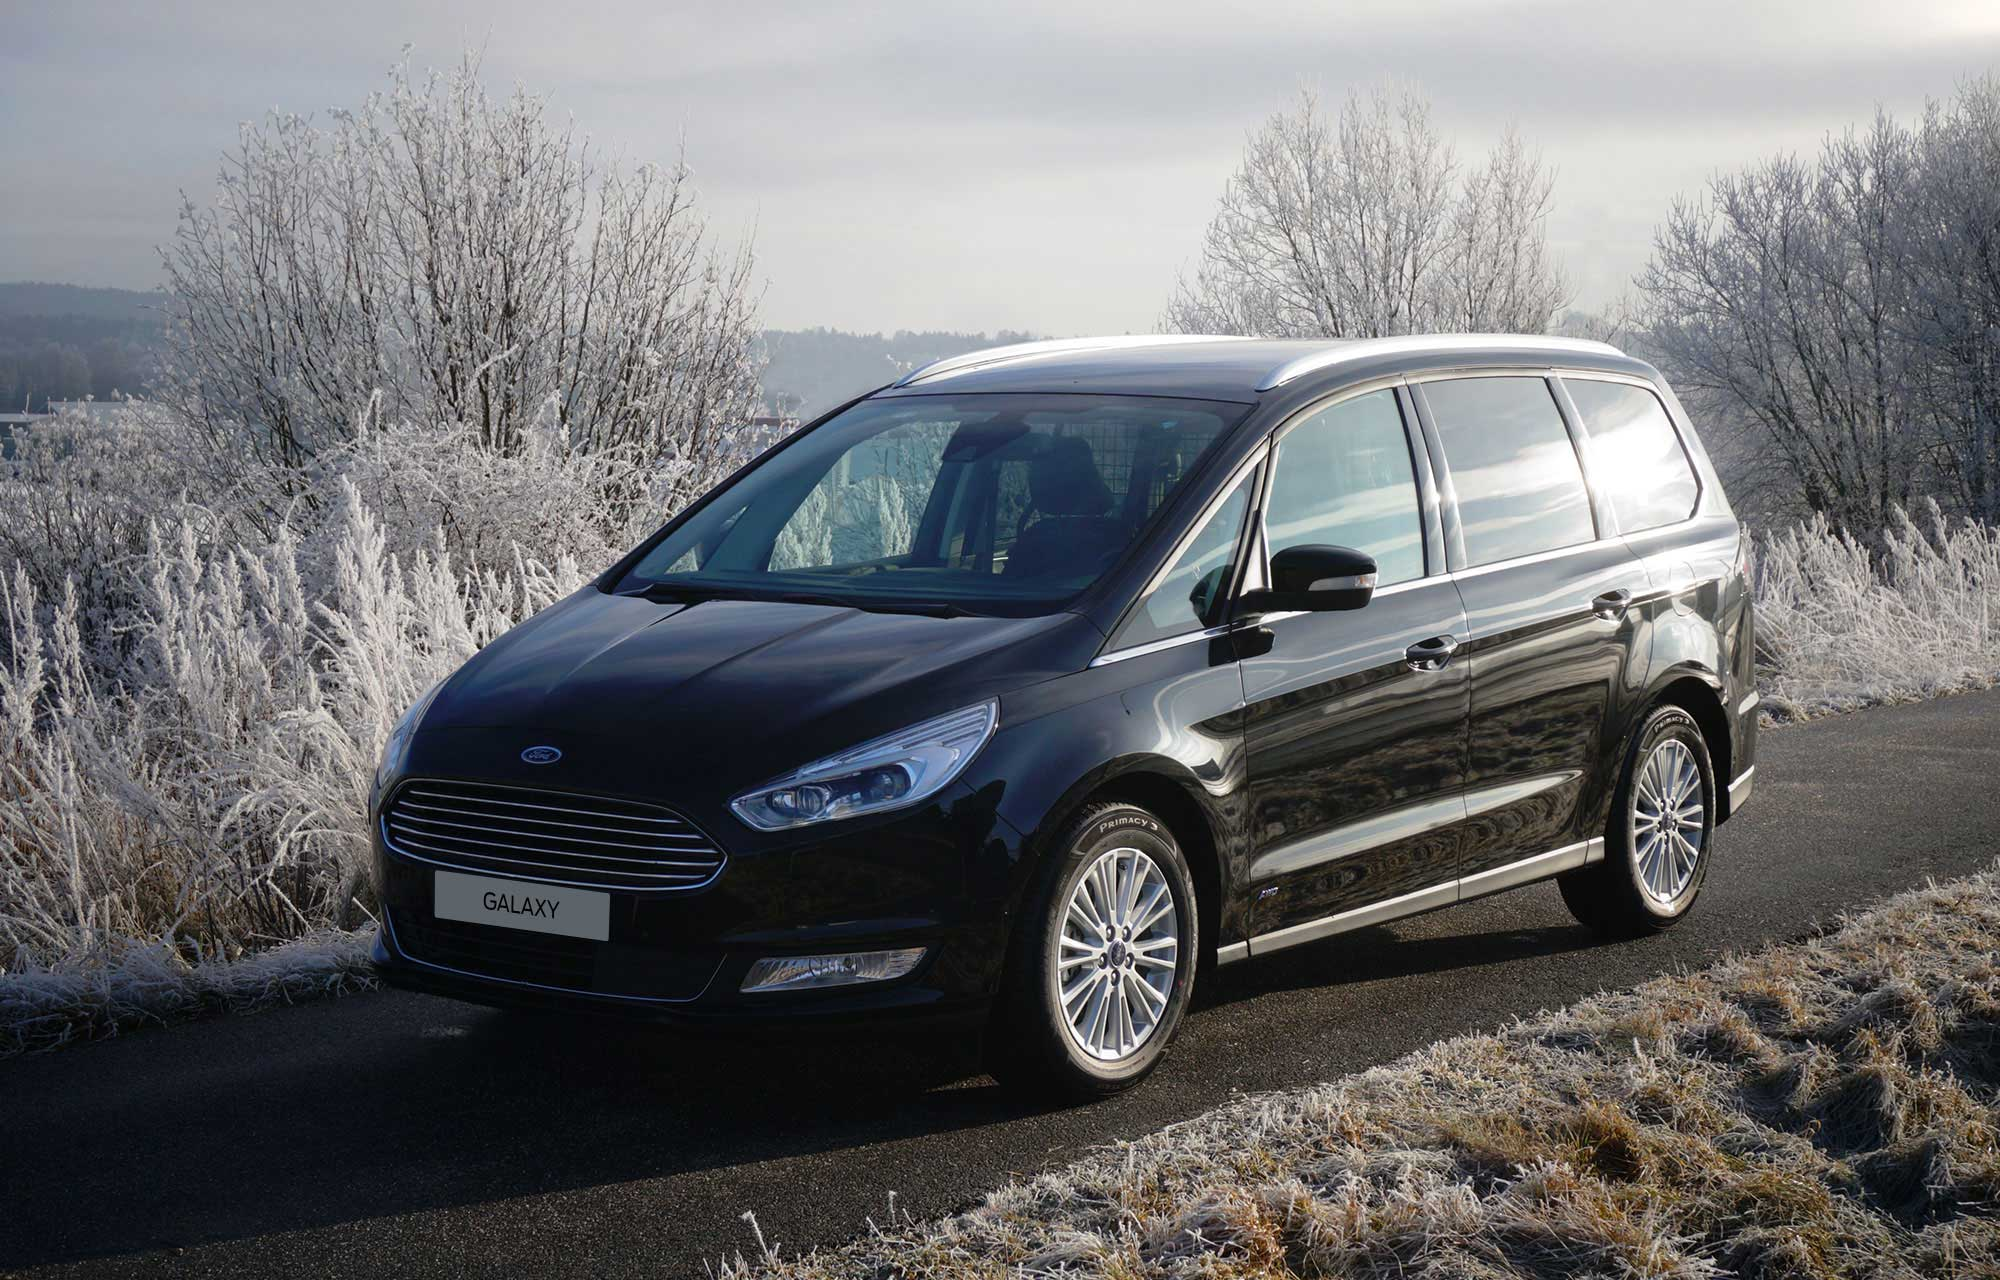 FORD GALAXY VAREBIL